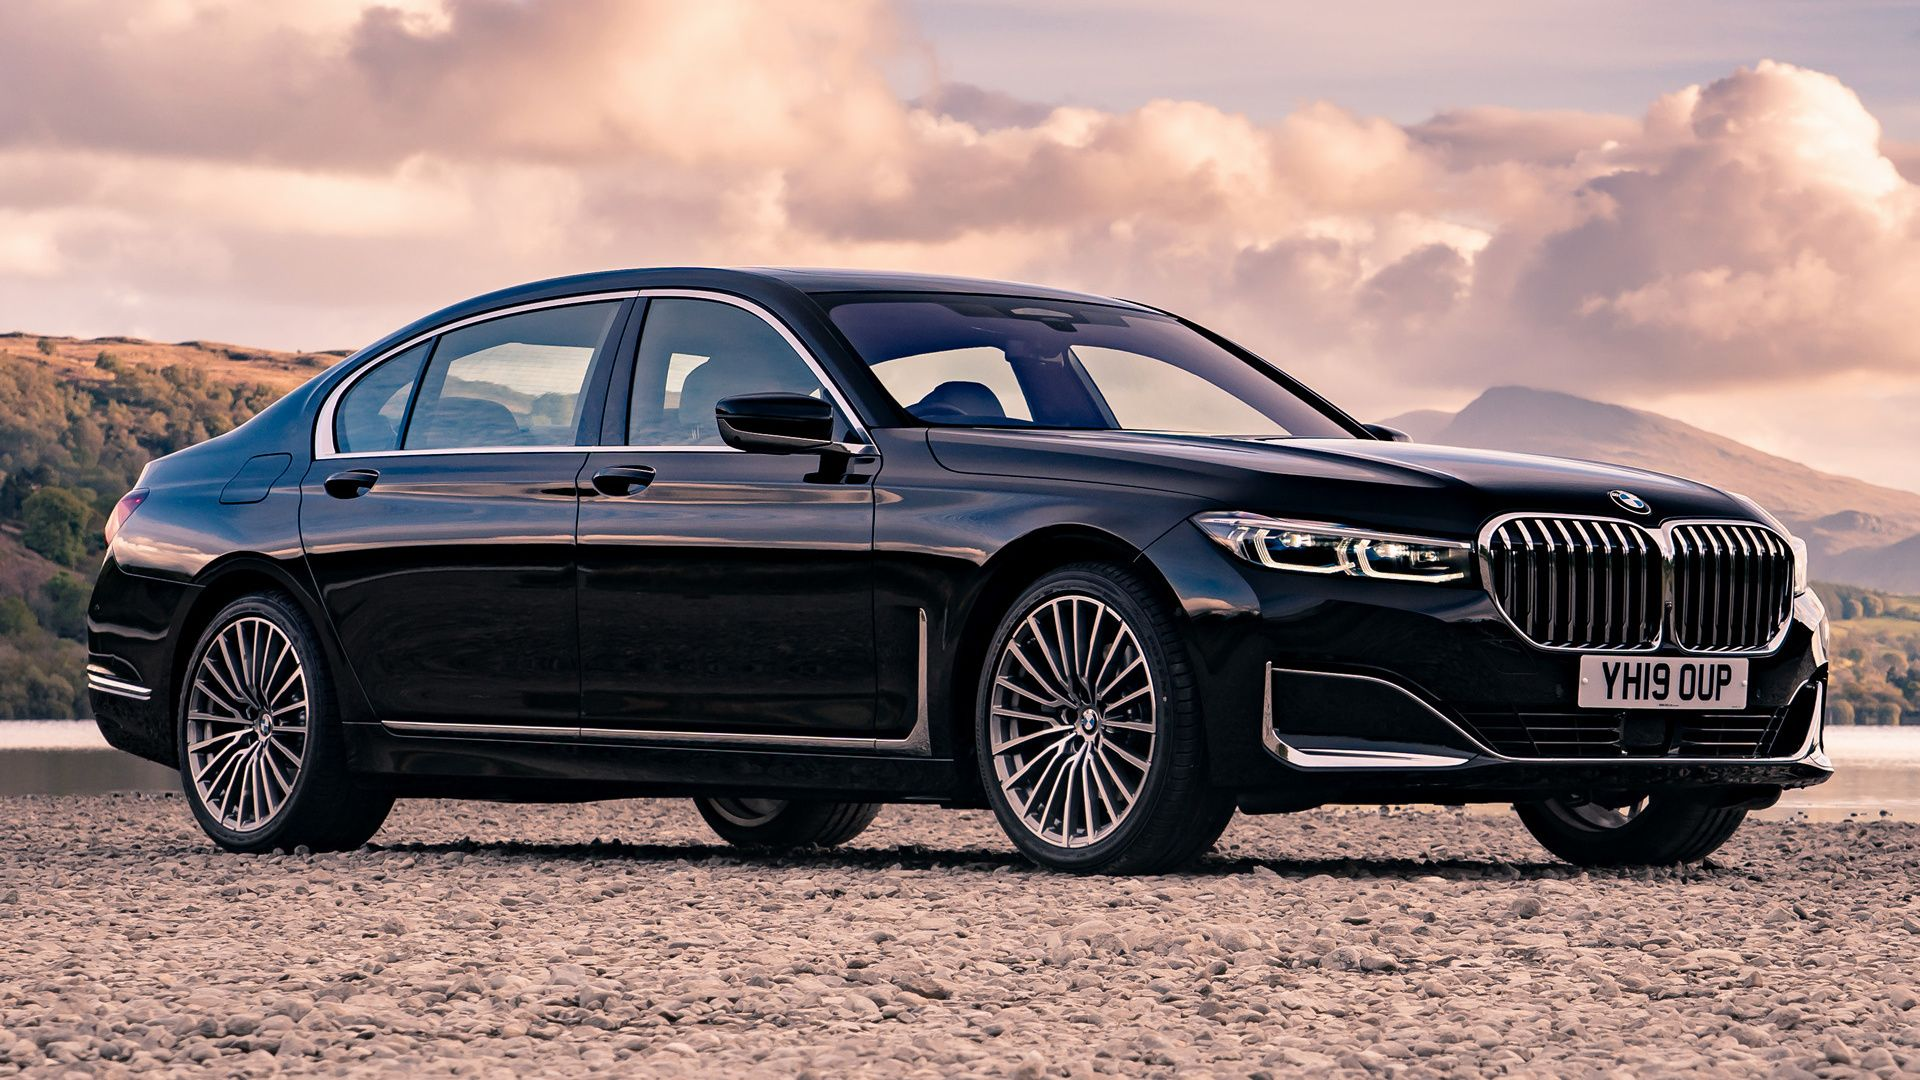 Bmw 7 Wallpapers Top Free Bmw 7 Backgrounds Wallpaperaccess